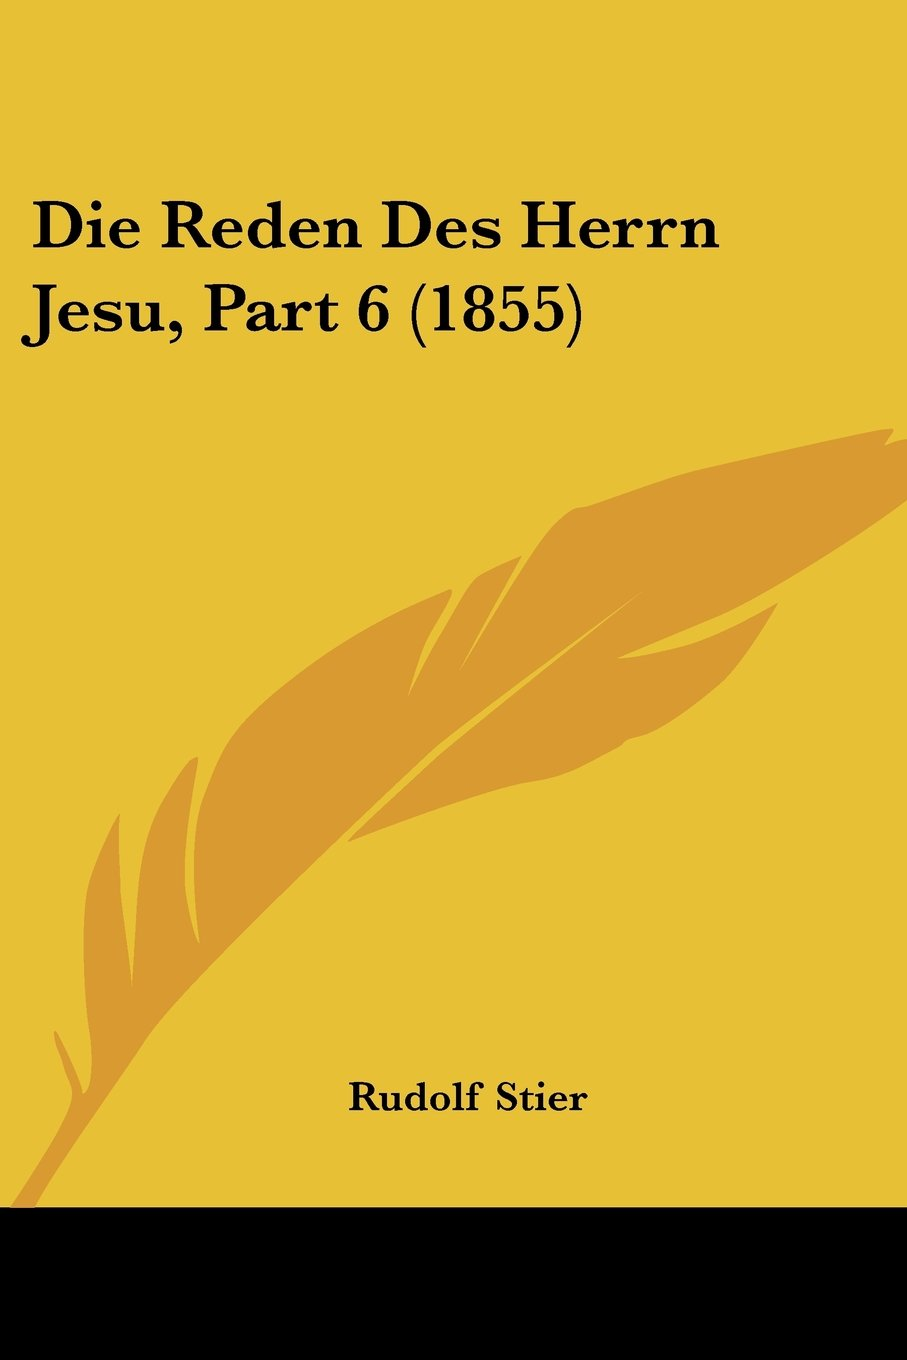 Download Die Reden Des Herrn Jesu, Part 6 (1855) (German Edition) pdf epub